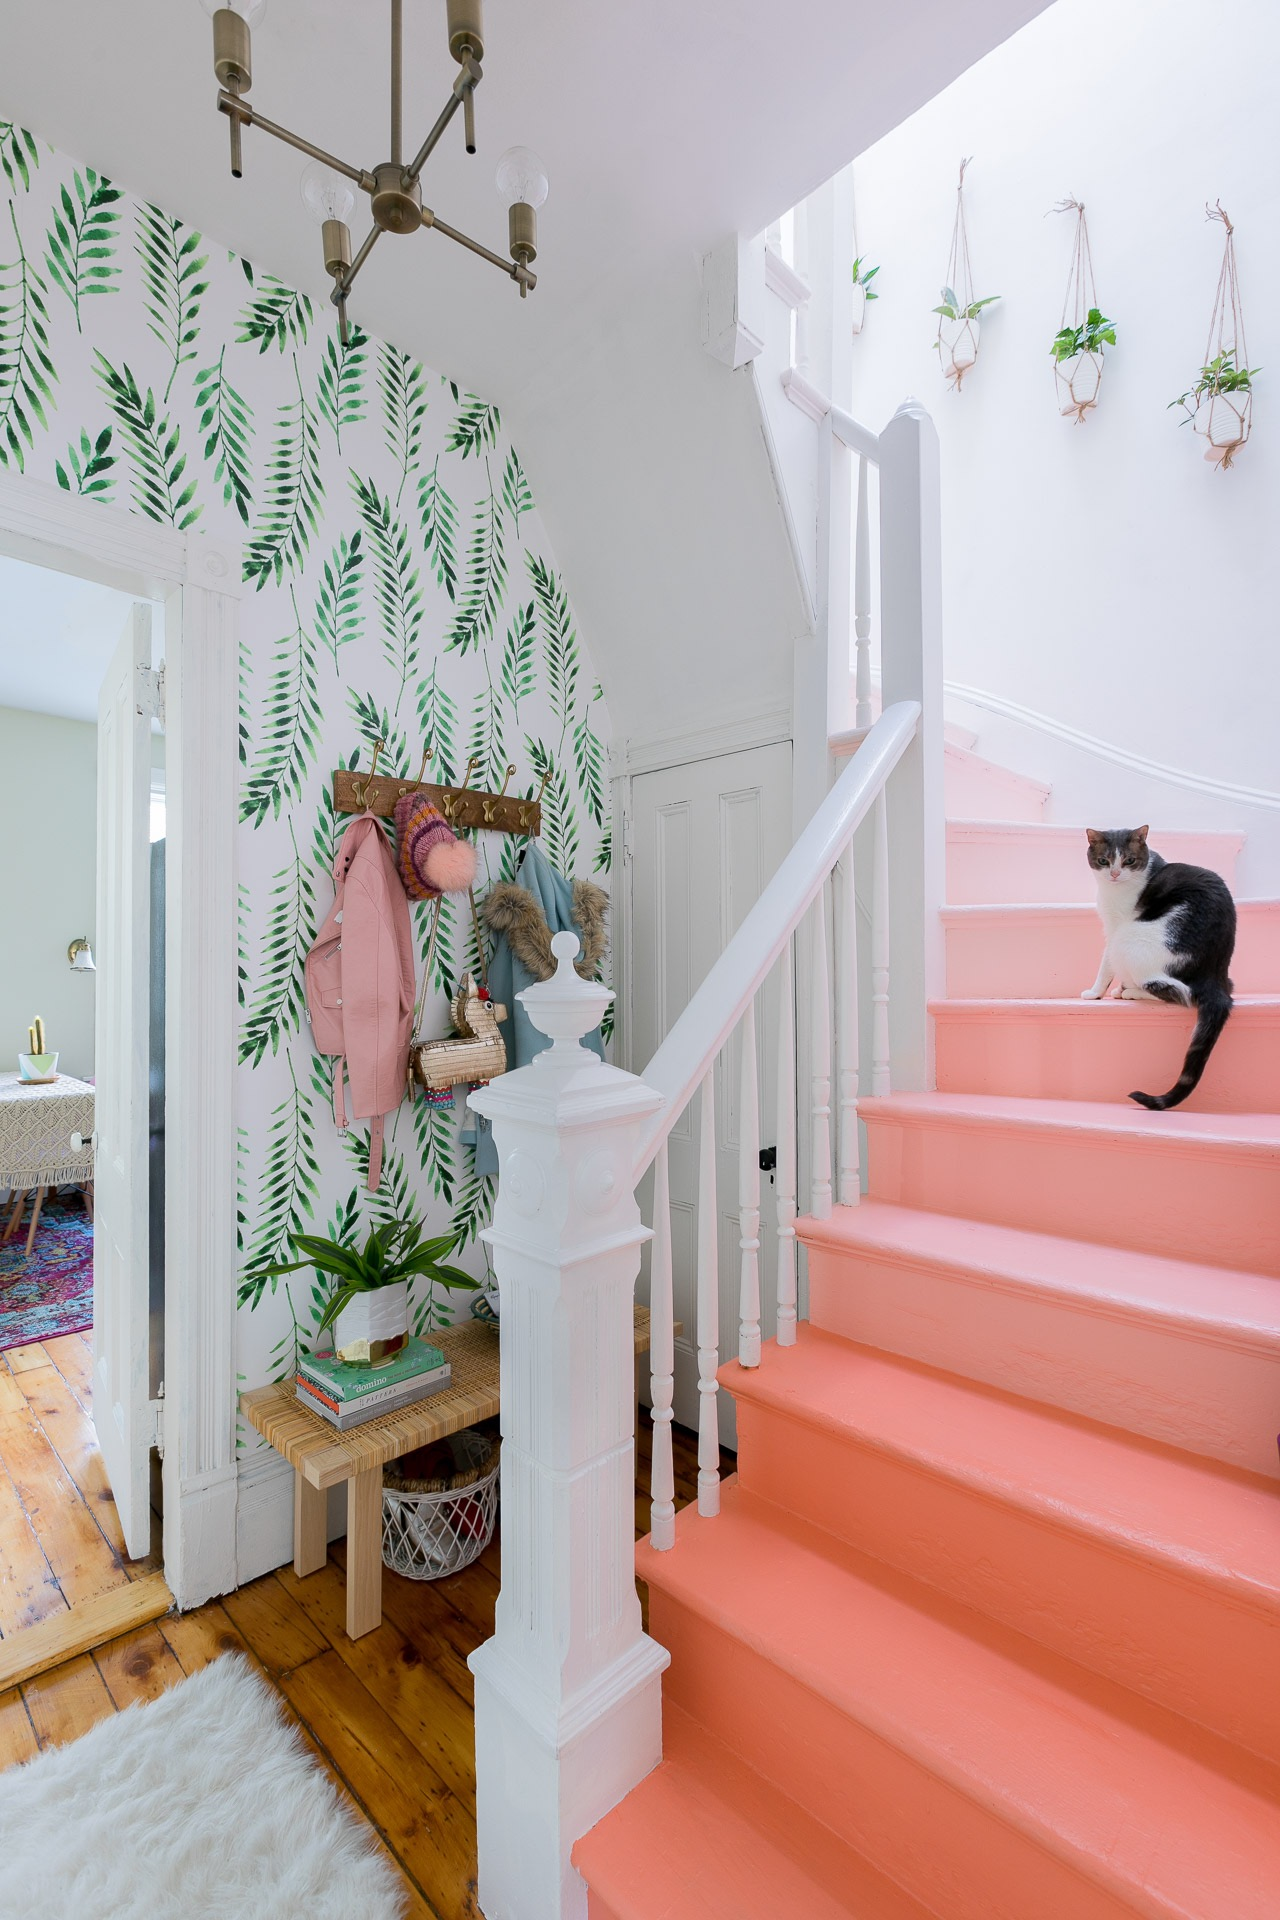 Green Leaf Wallpaper Coral Ombre Stairs How to Decorate with Living Coral Pantone's Color of the Year